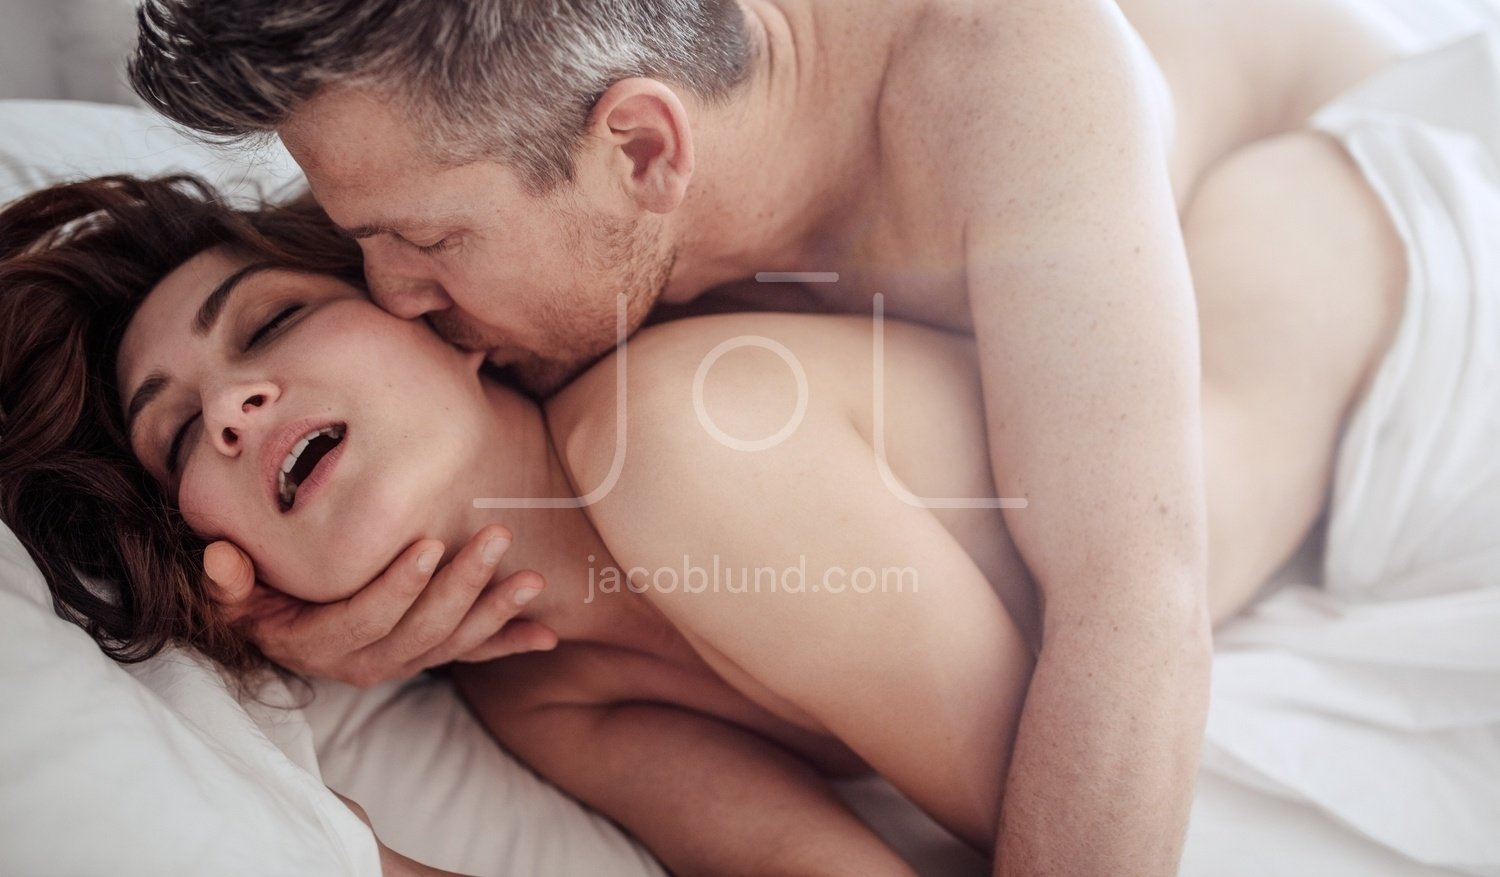 Couple sex young Couple